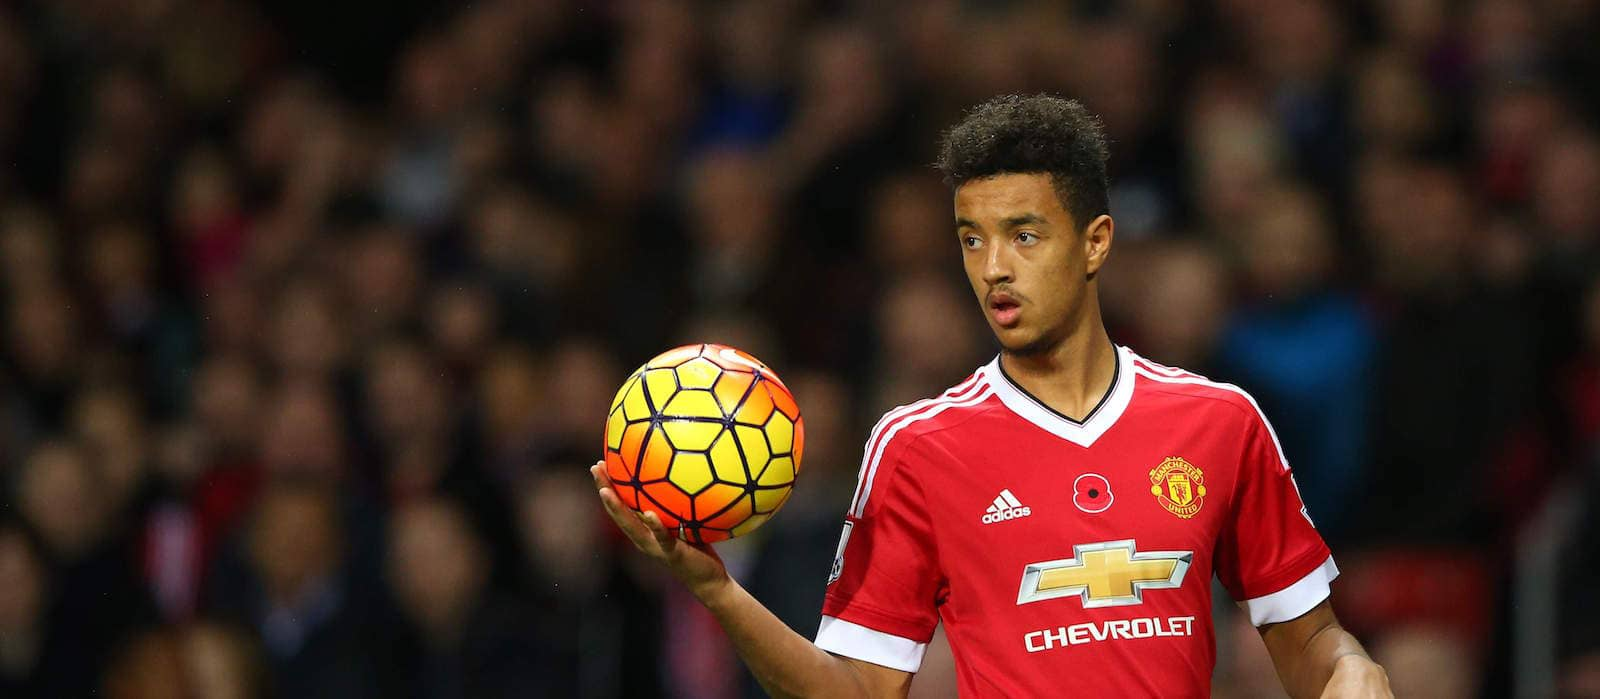 Cameron Borthwick-Jackson signs new Manchester United contract